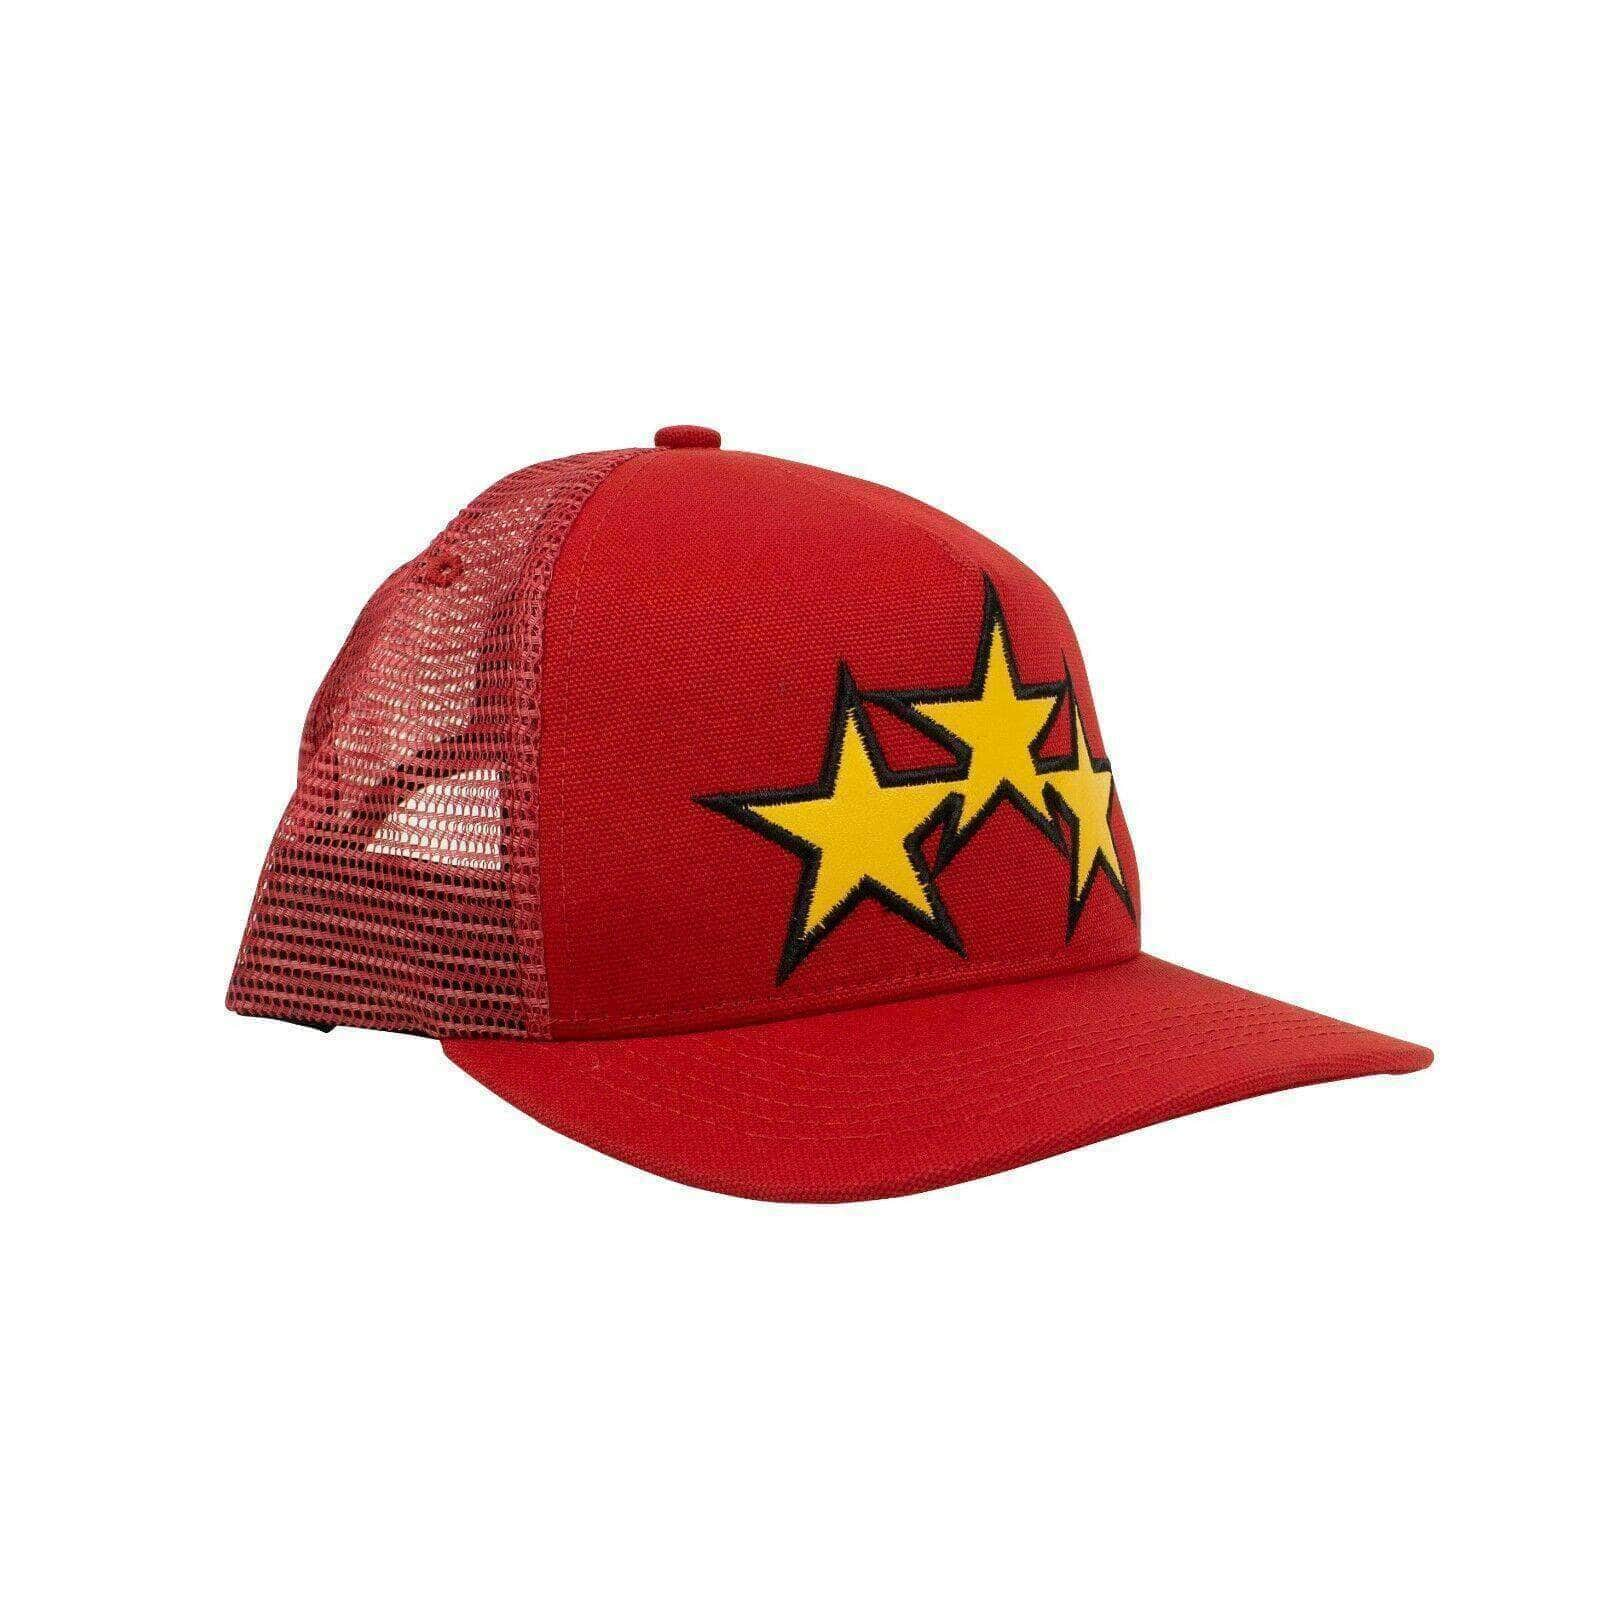 Amiri Men's Accessories 'Star Trucker' Baseball Cap - Red 191846027006 73A-1012